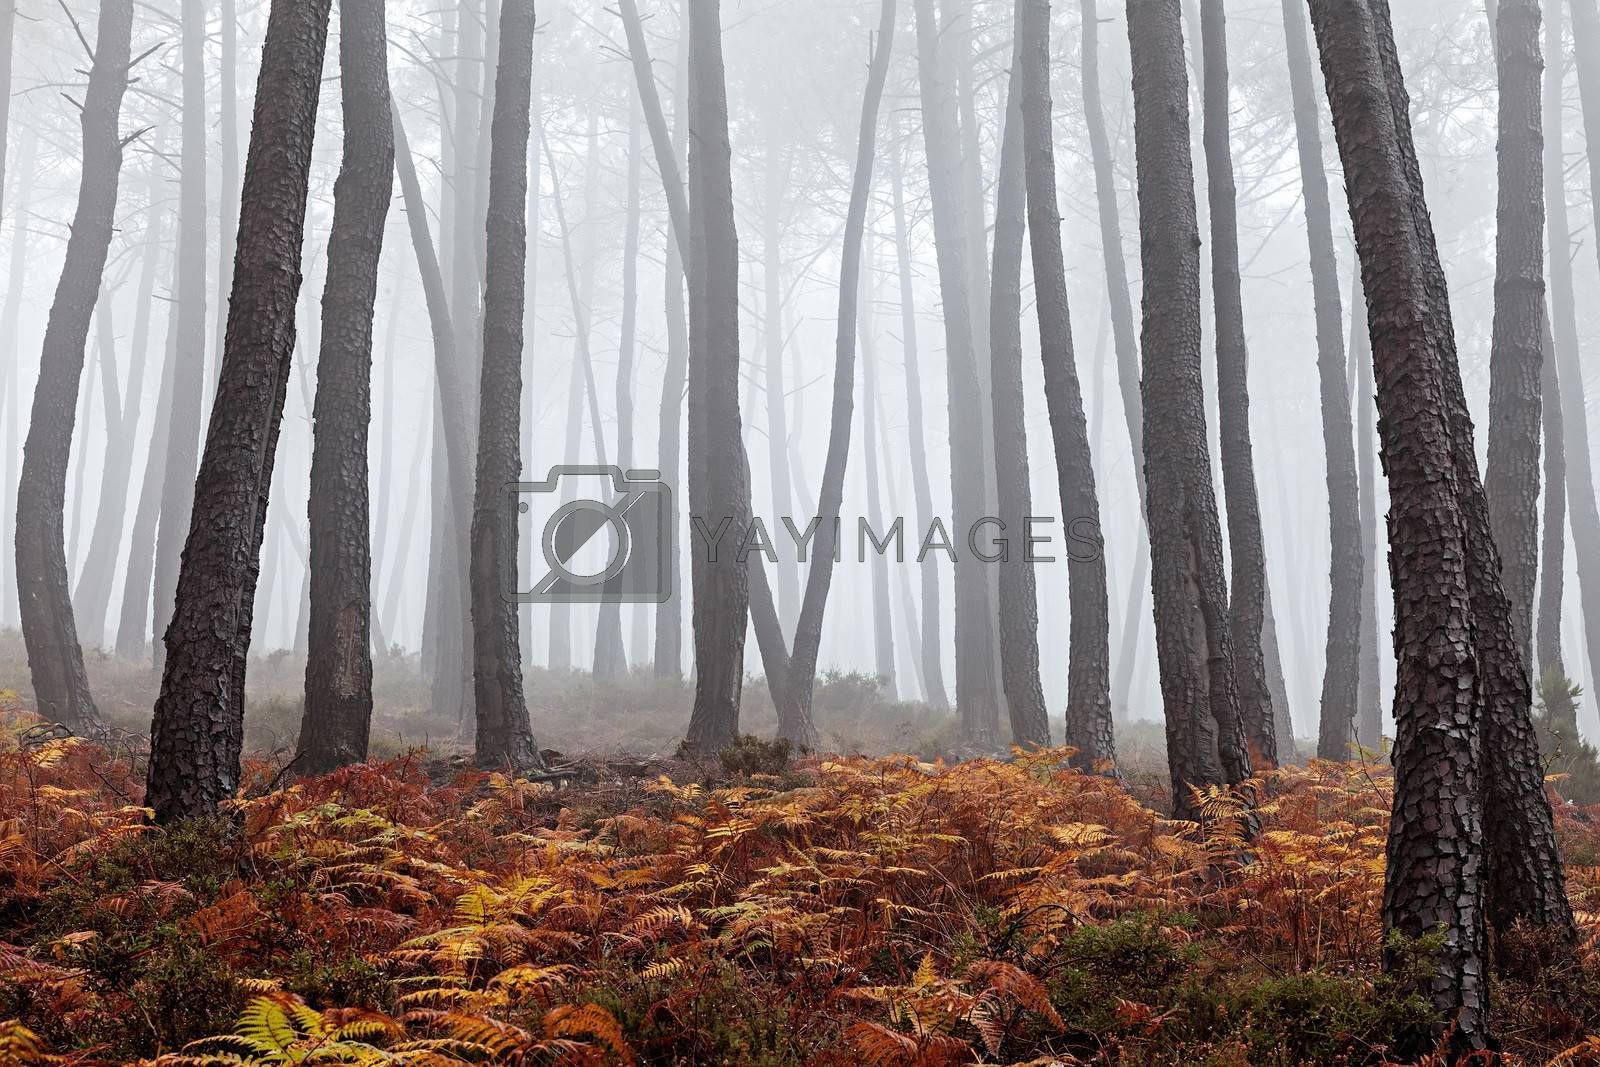 Royalty free image of Foggy Forest by ajn